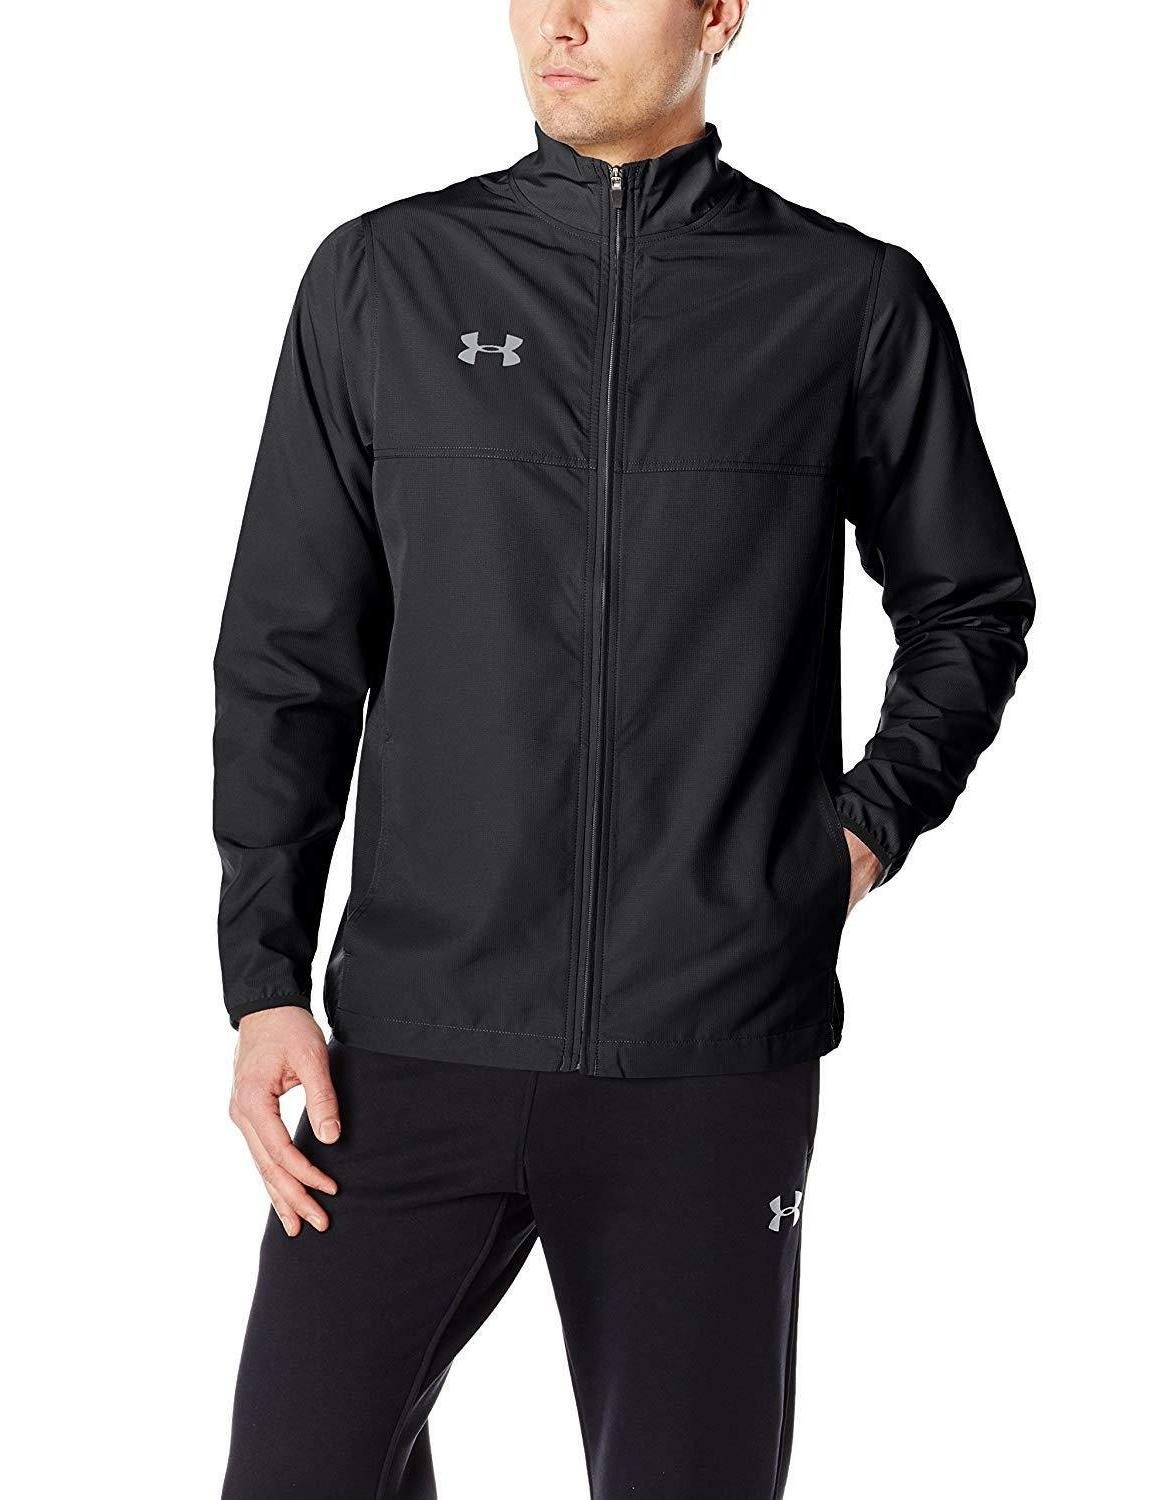 Under Armour Men's Vital Full Zip Warm-Up Jacket 1248452 001